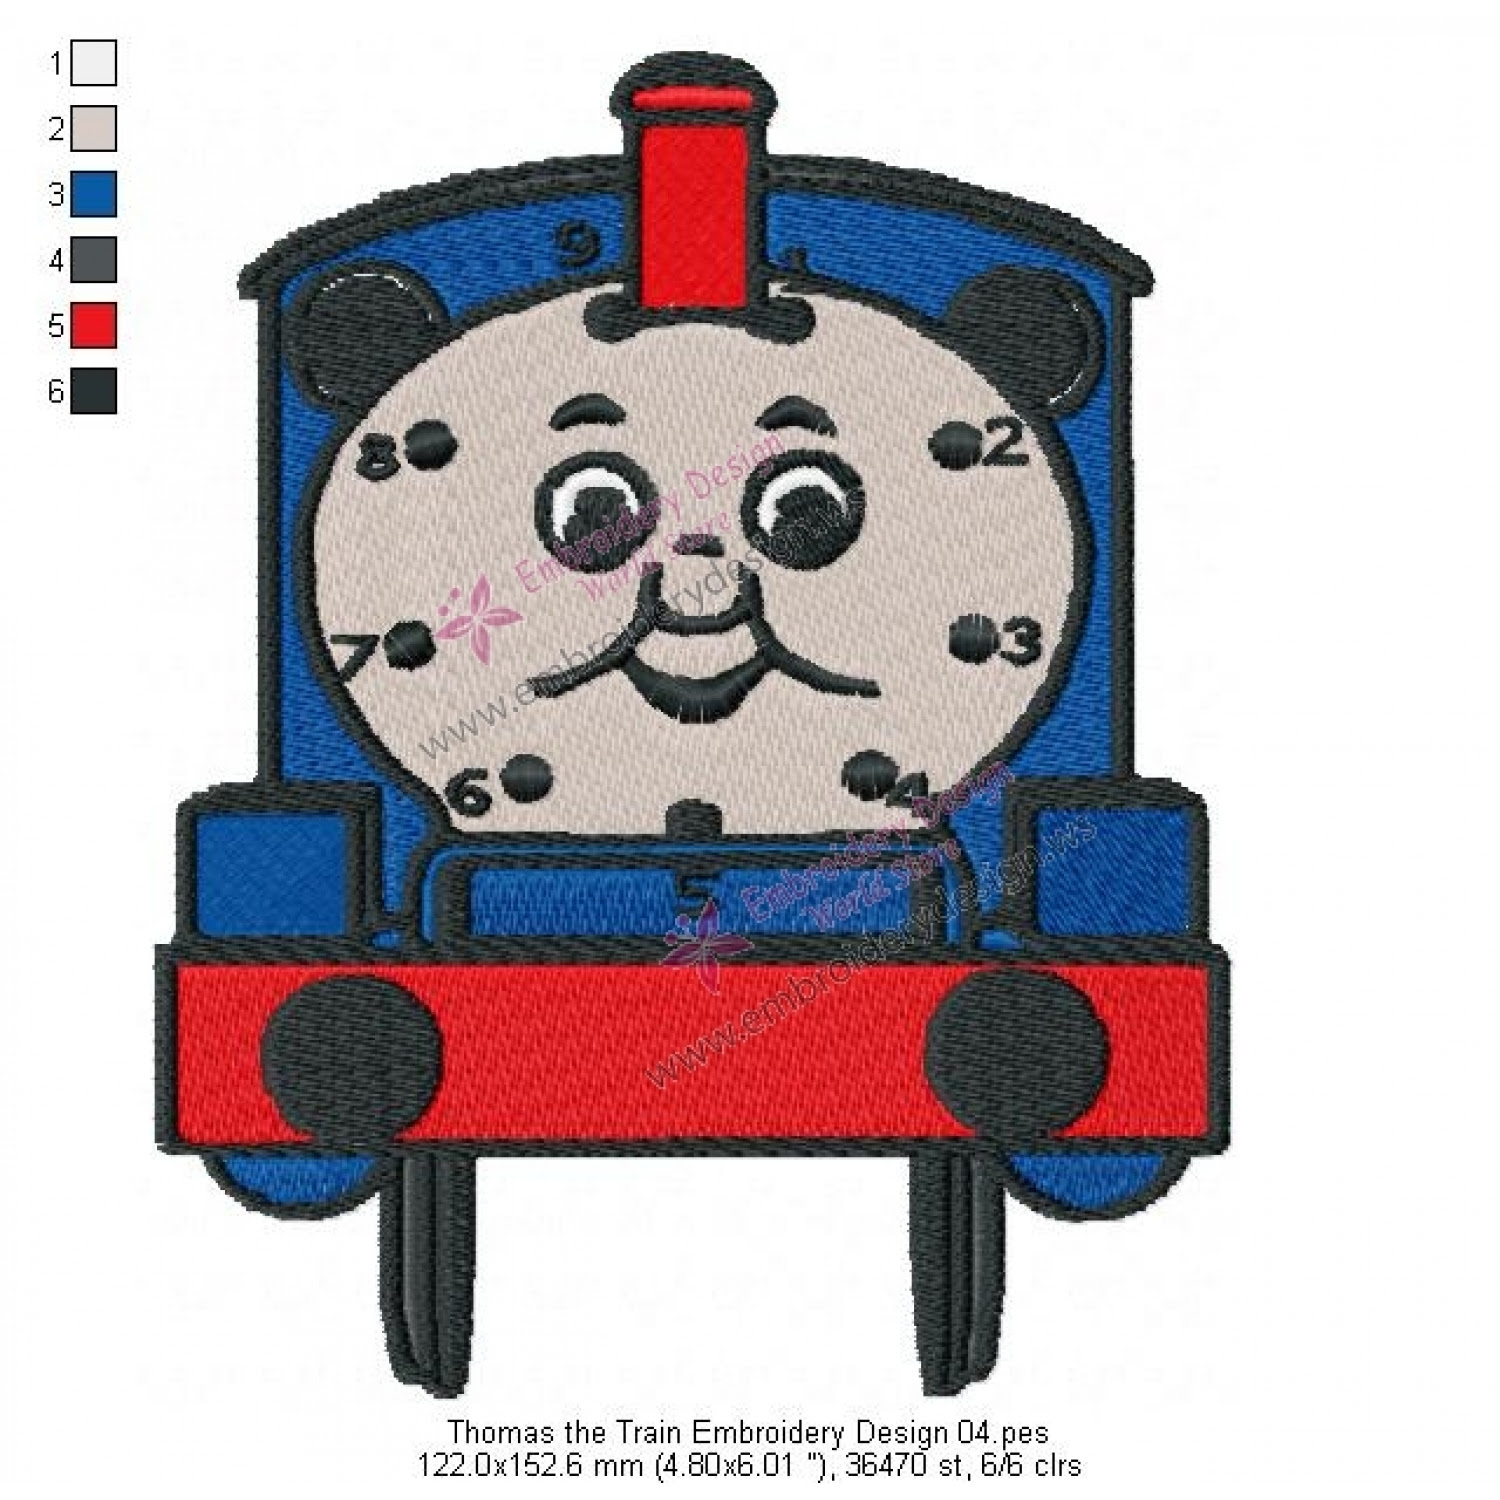 Thomas The Train Embroidery Design 04